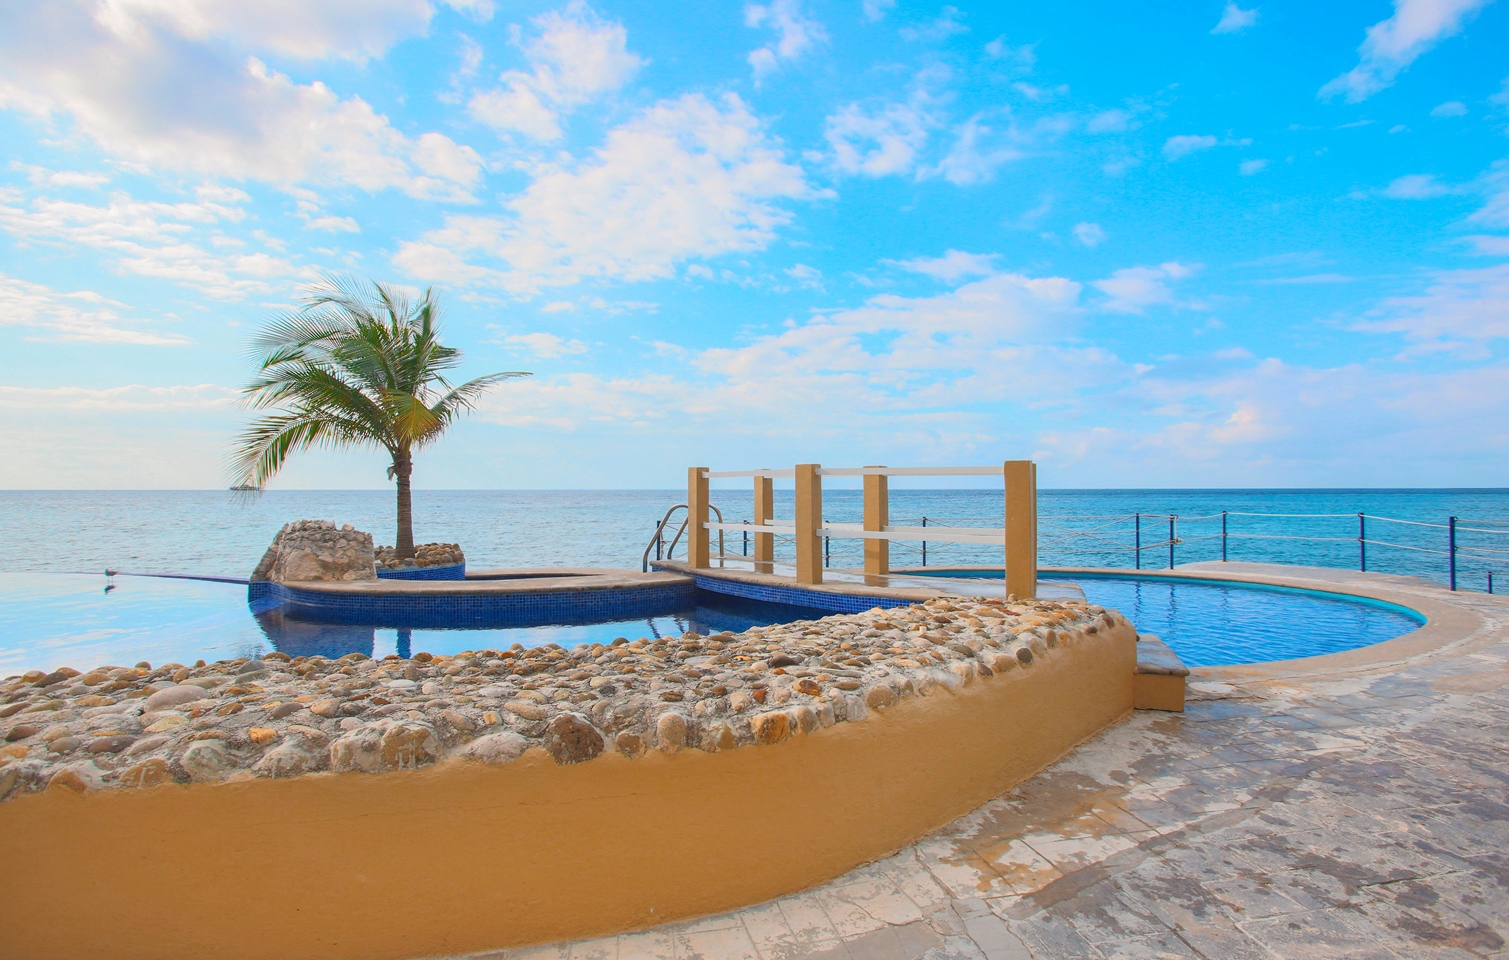 reviews buying cozumel real estate with Karen cozumel realtor